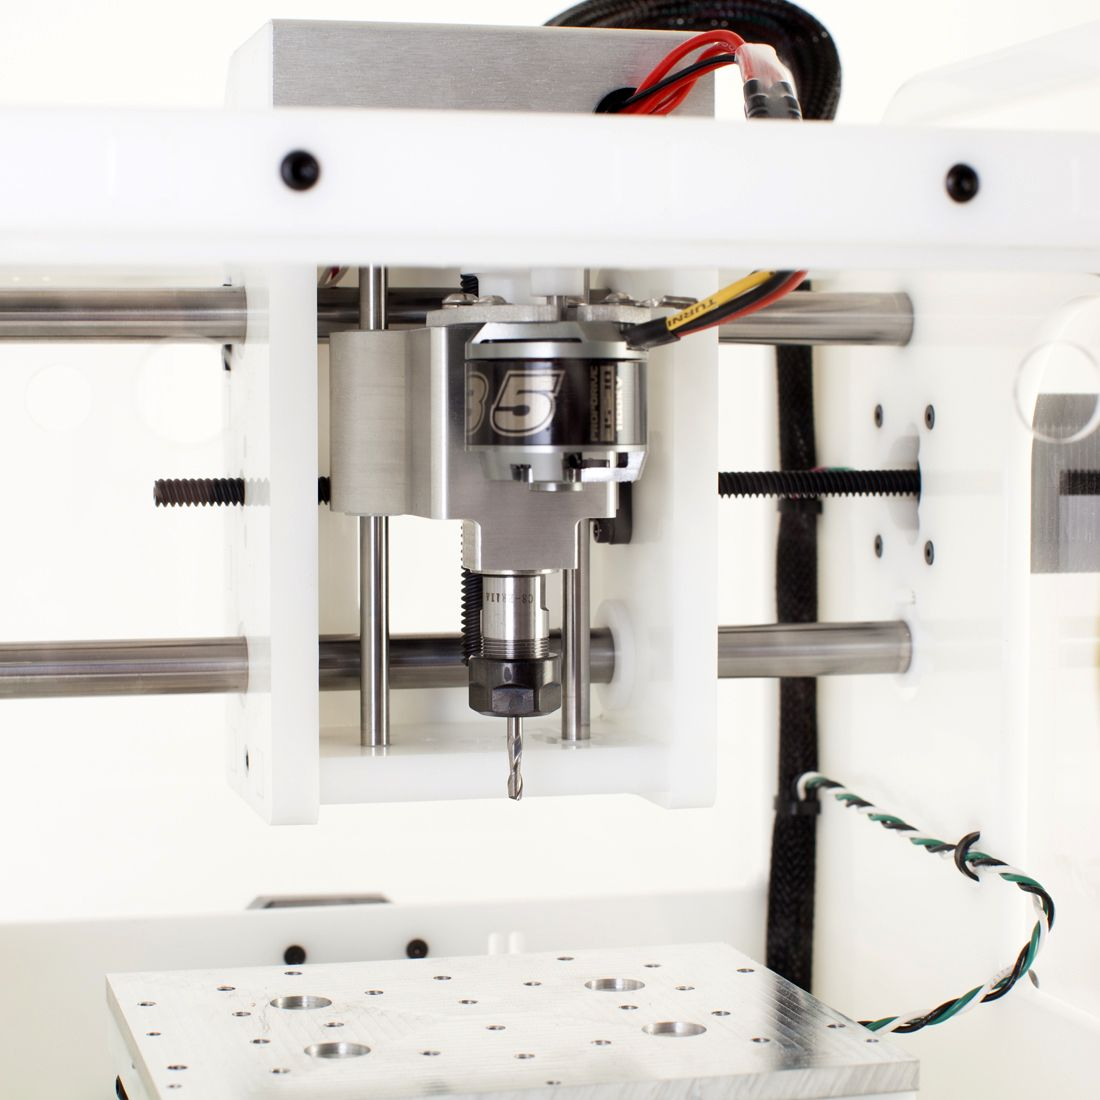 Othermill bldc motor spindle google search 3d print for Motor city spindle repair